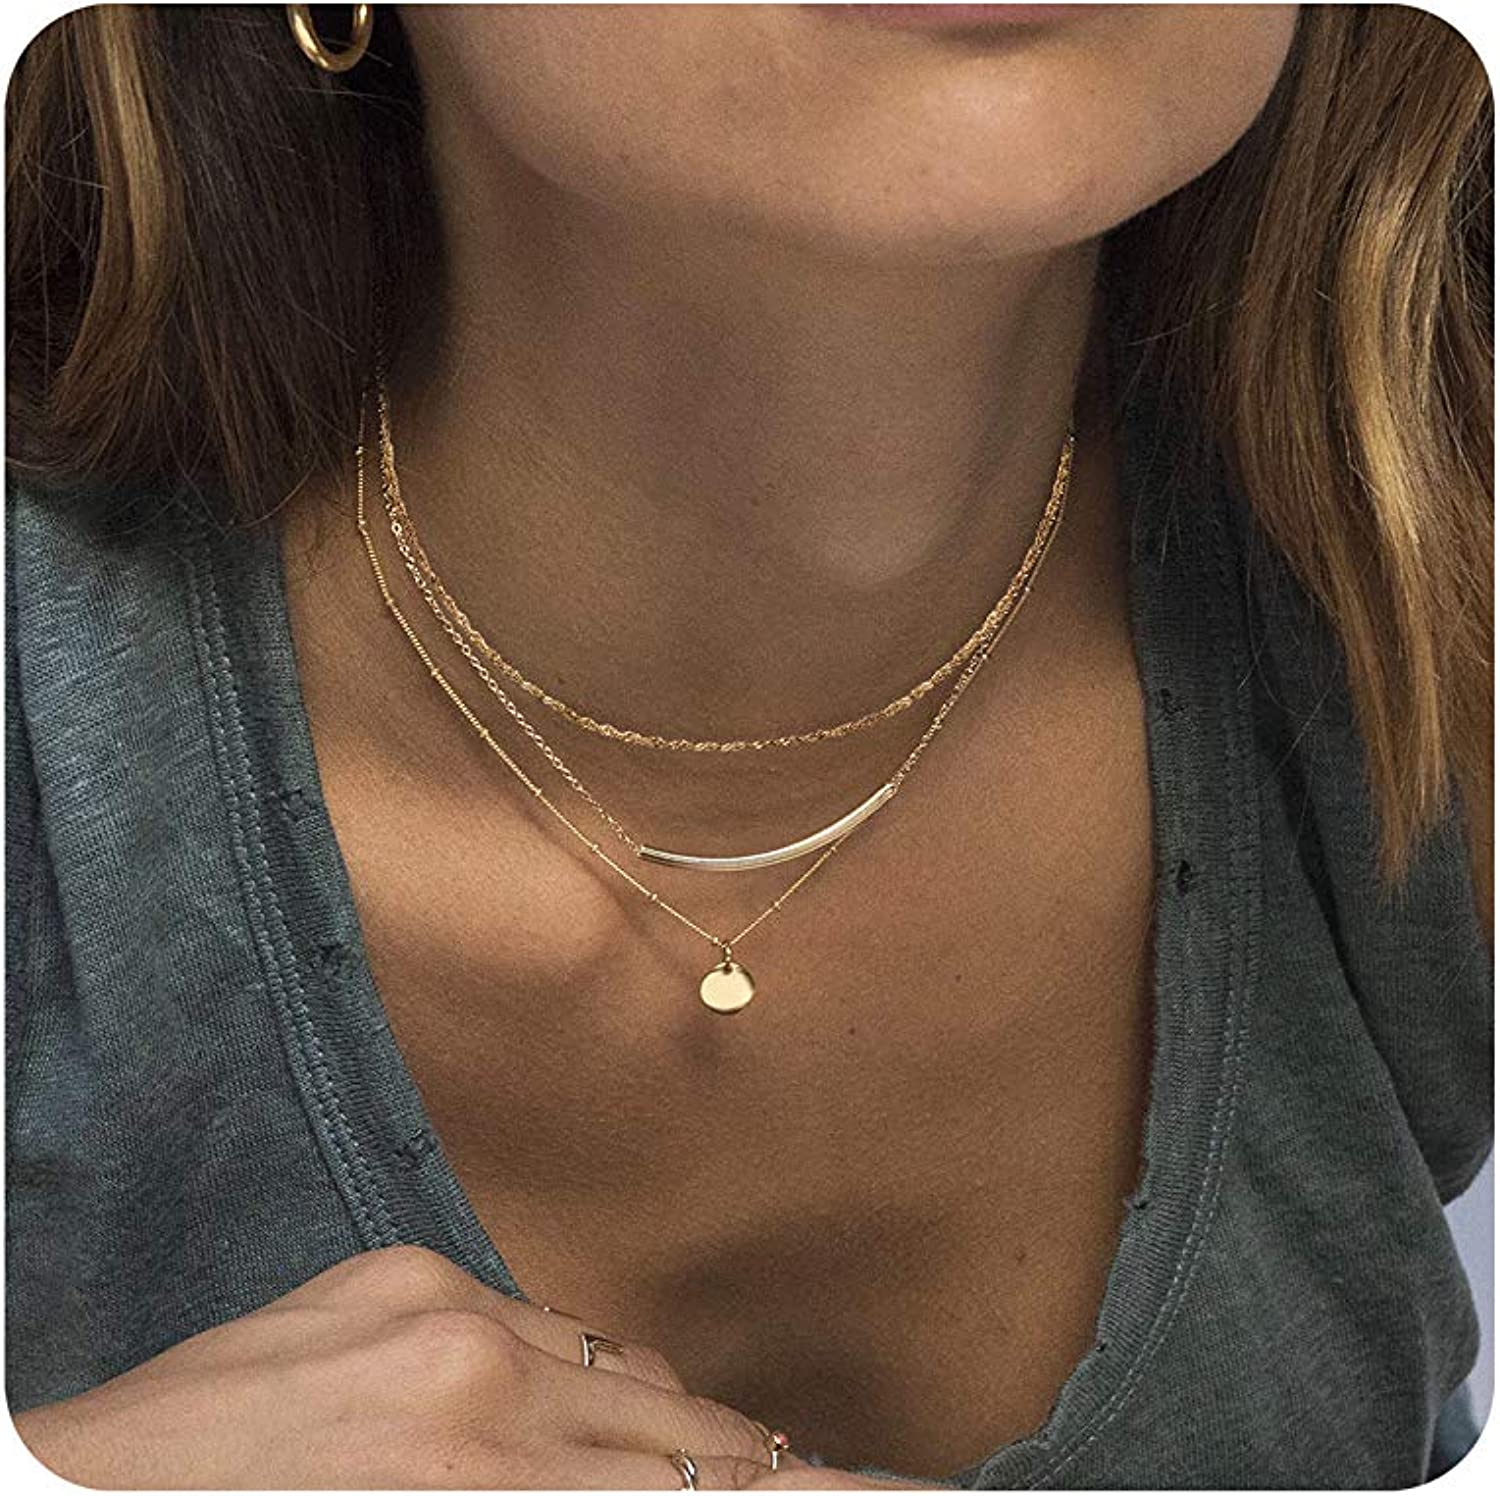 So Pretty Dainty Layered Choker Necklaces Handmade Coin Tube Star Pearl Pendant Multilayer Adjustable Layering Chain Gold Plated Necklaces Set for Women Girls